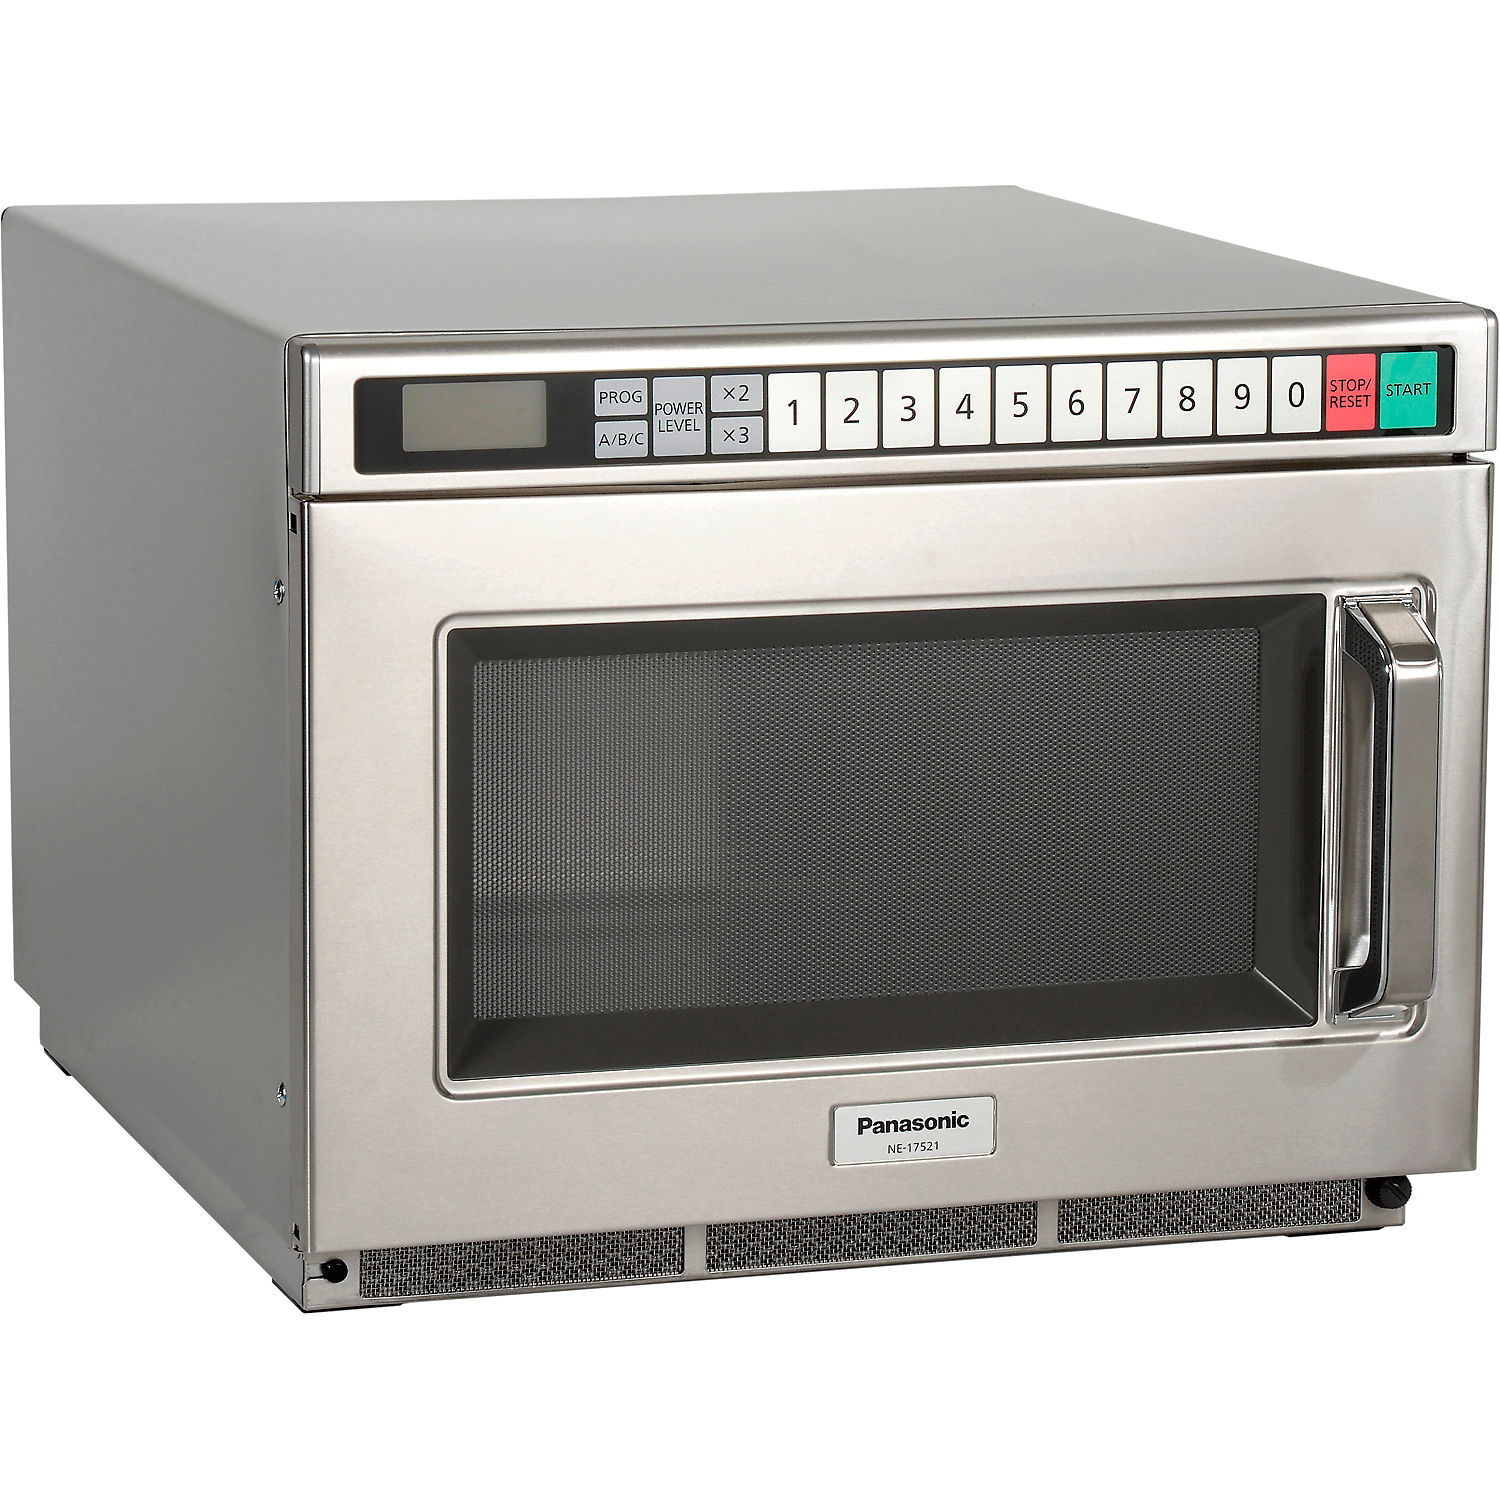 Commercial Appliances | Microwave Ovens | Panasonic®